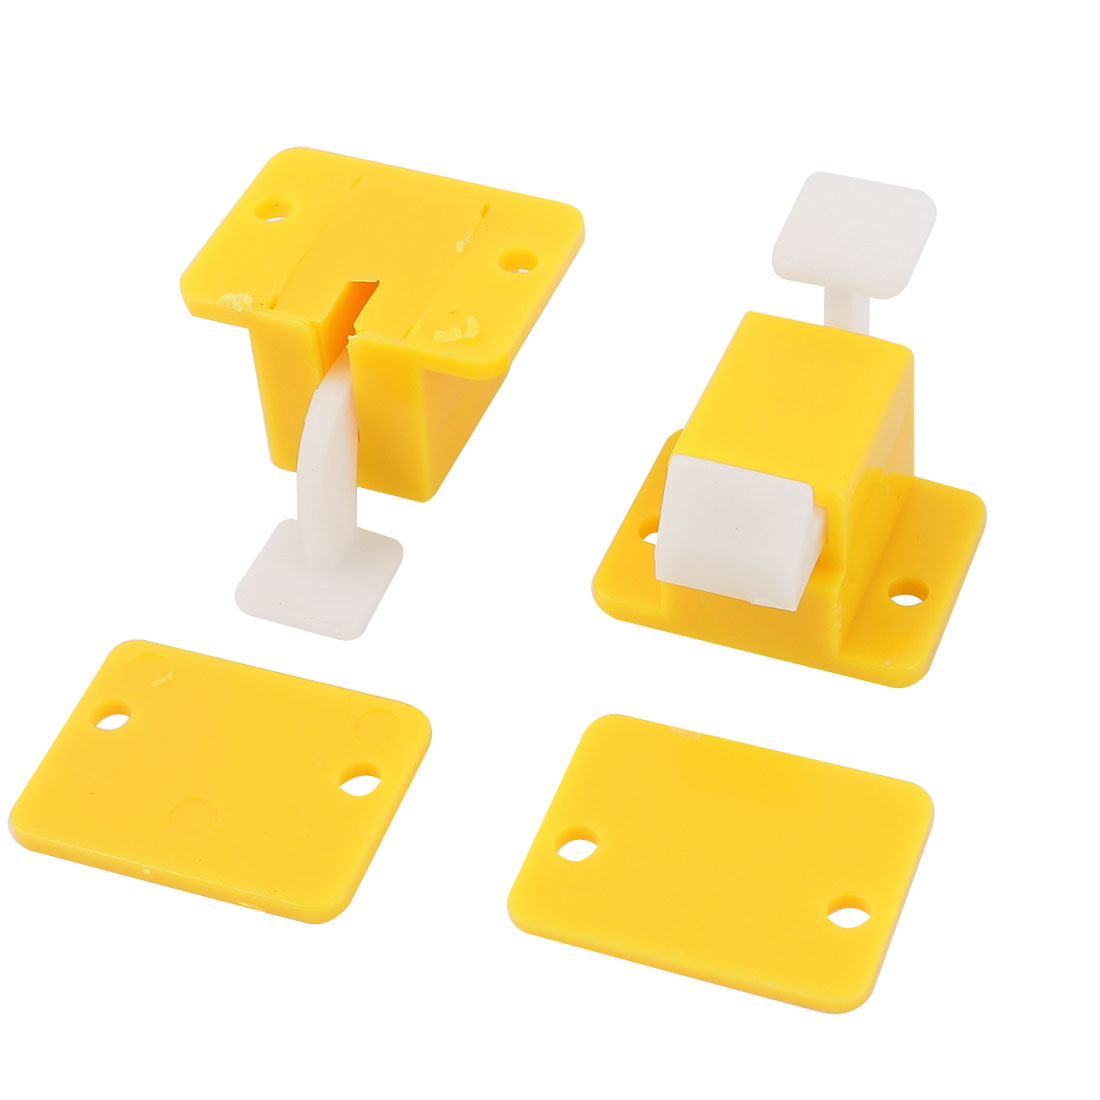 2 Pcs Plastic Prototype Test Fixture Latch Yellow White for PCB Board